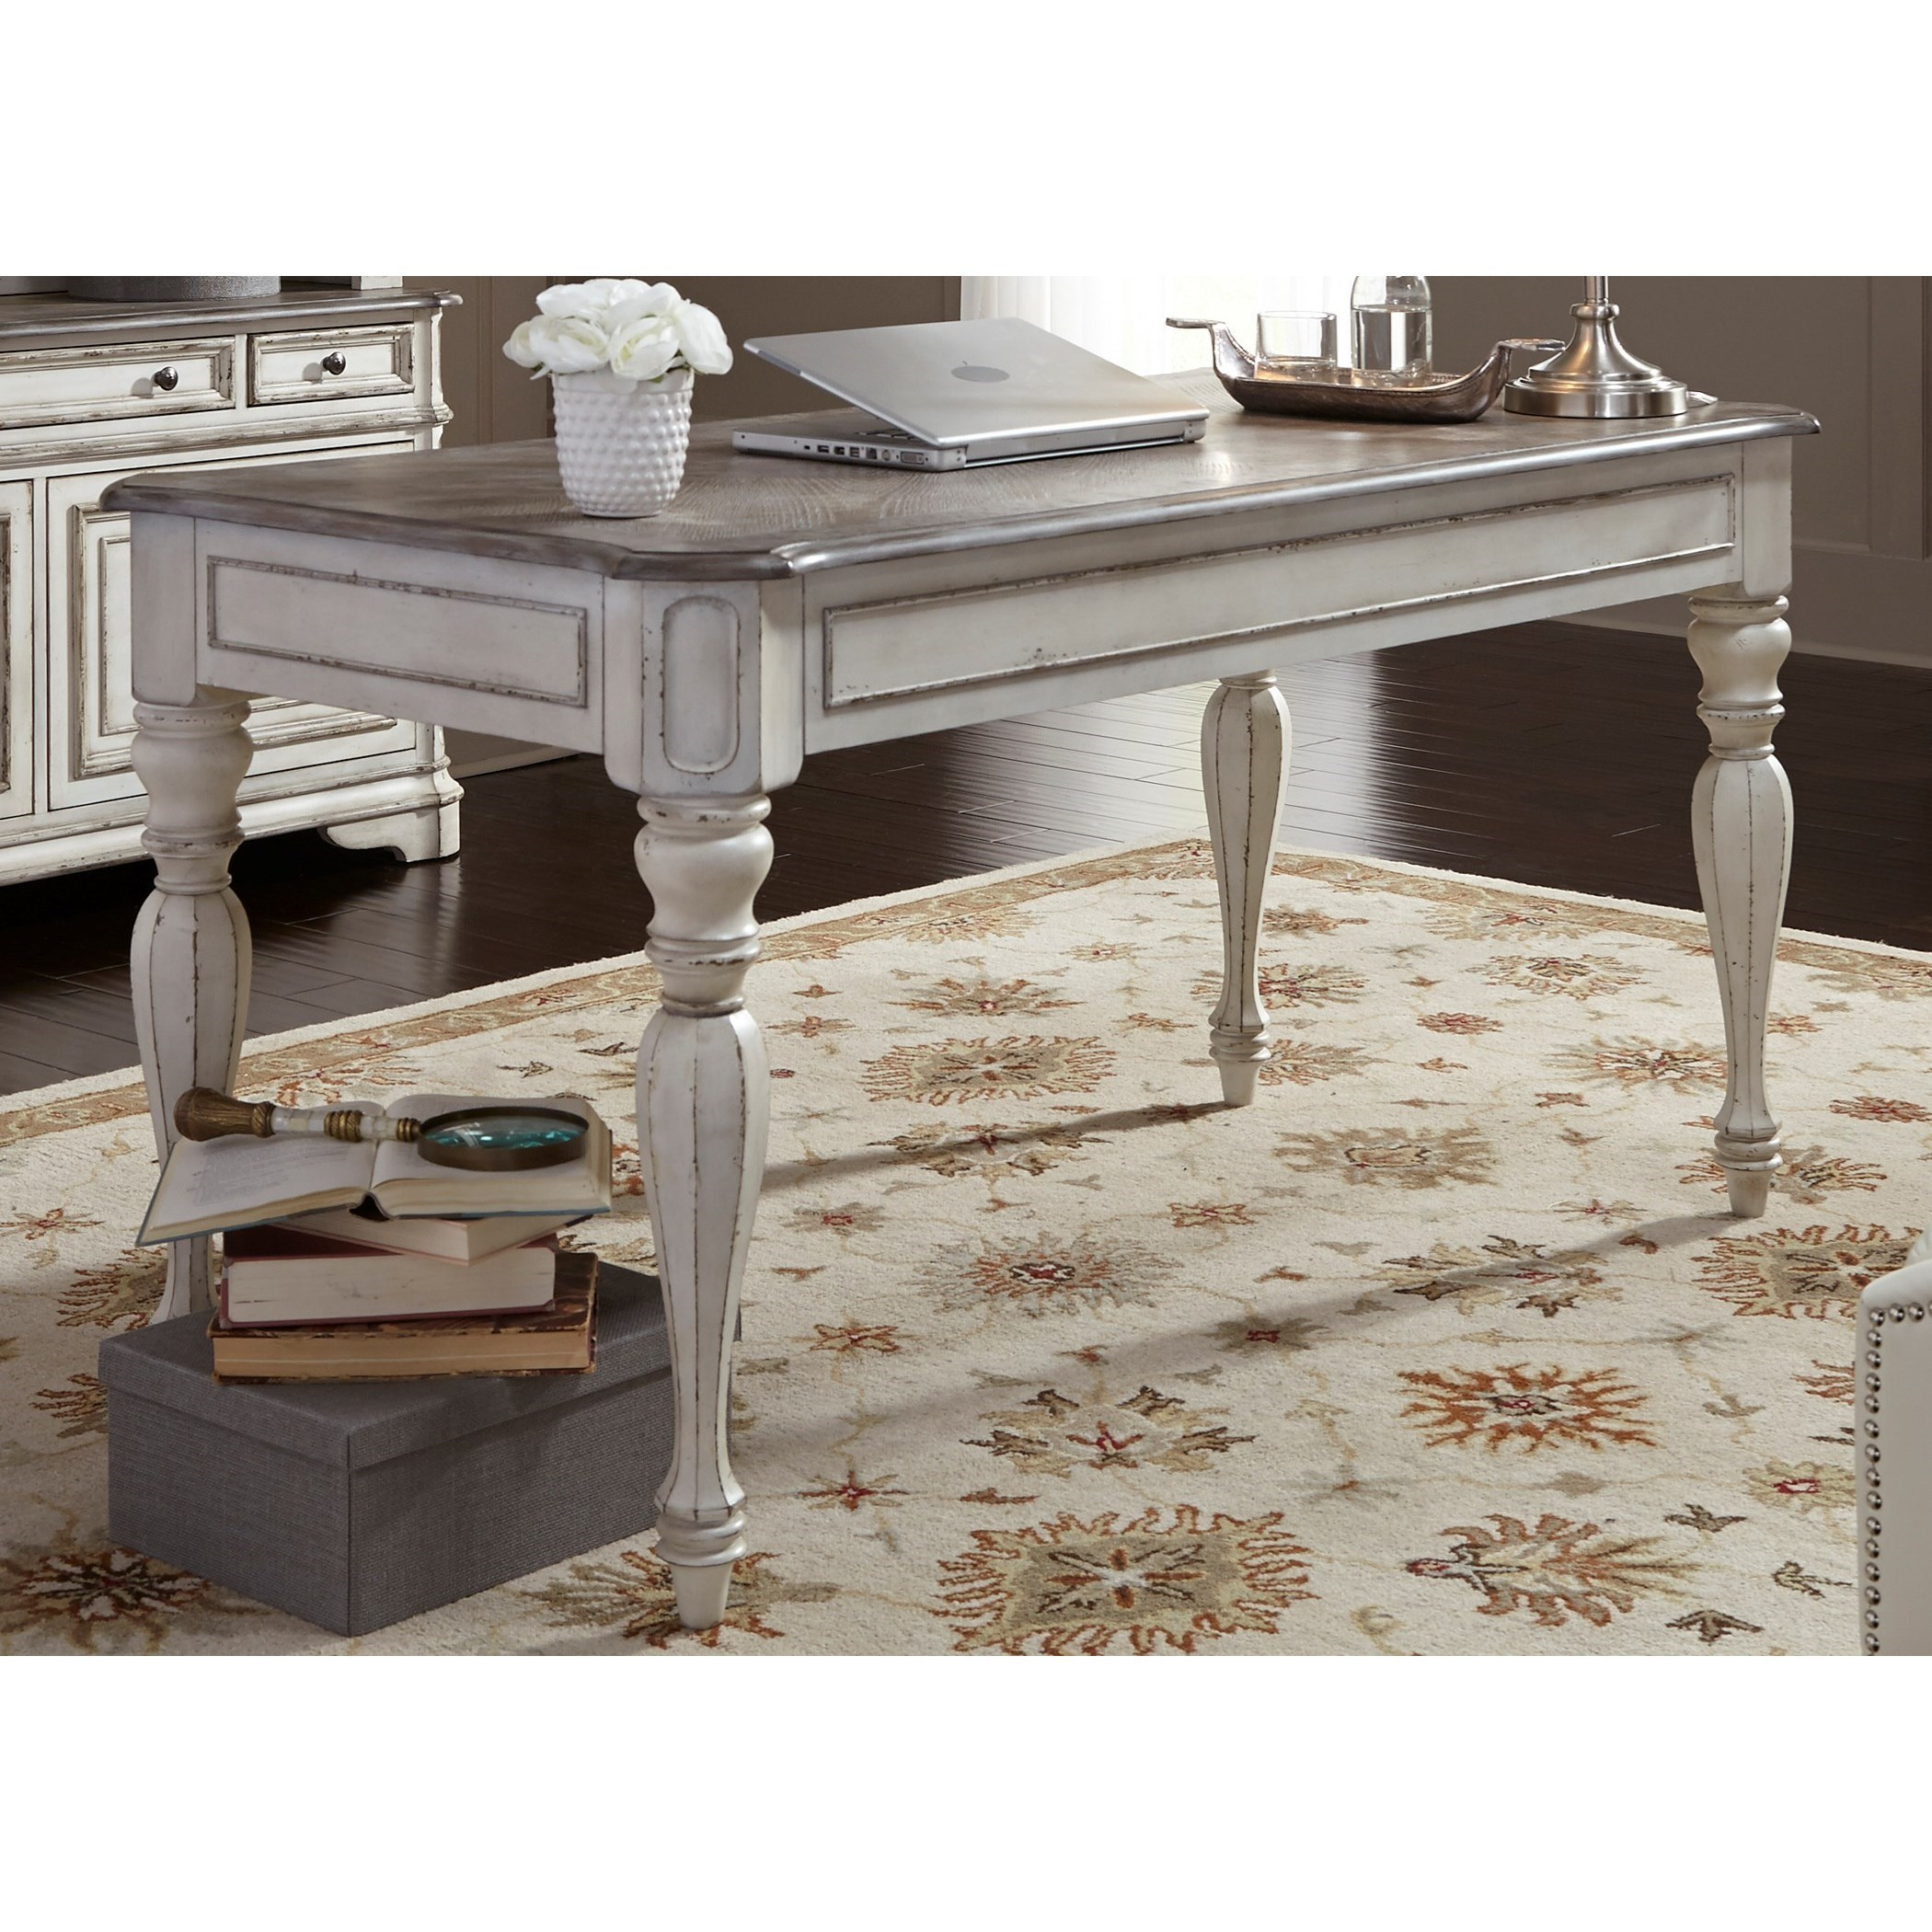 Liberty Furniture Magnolia Manor Office Writing Desk With Turned Legs |  VanDrie Home Furnishings | Table Desks/Writing Desks